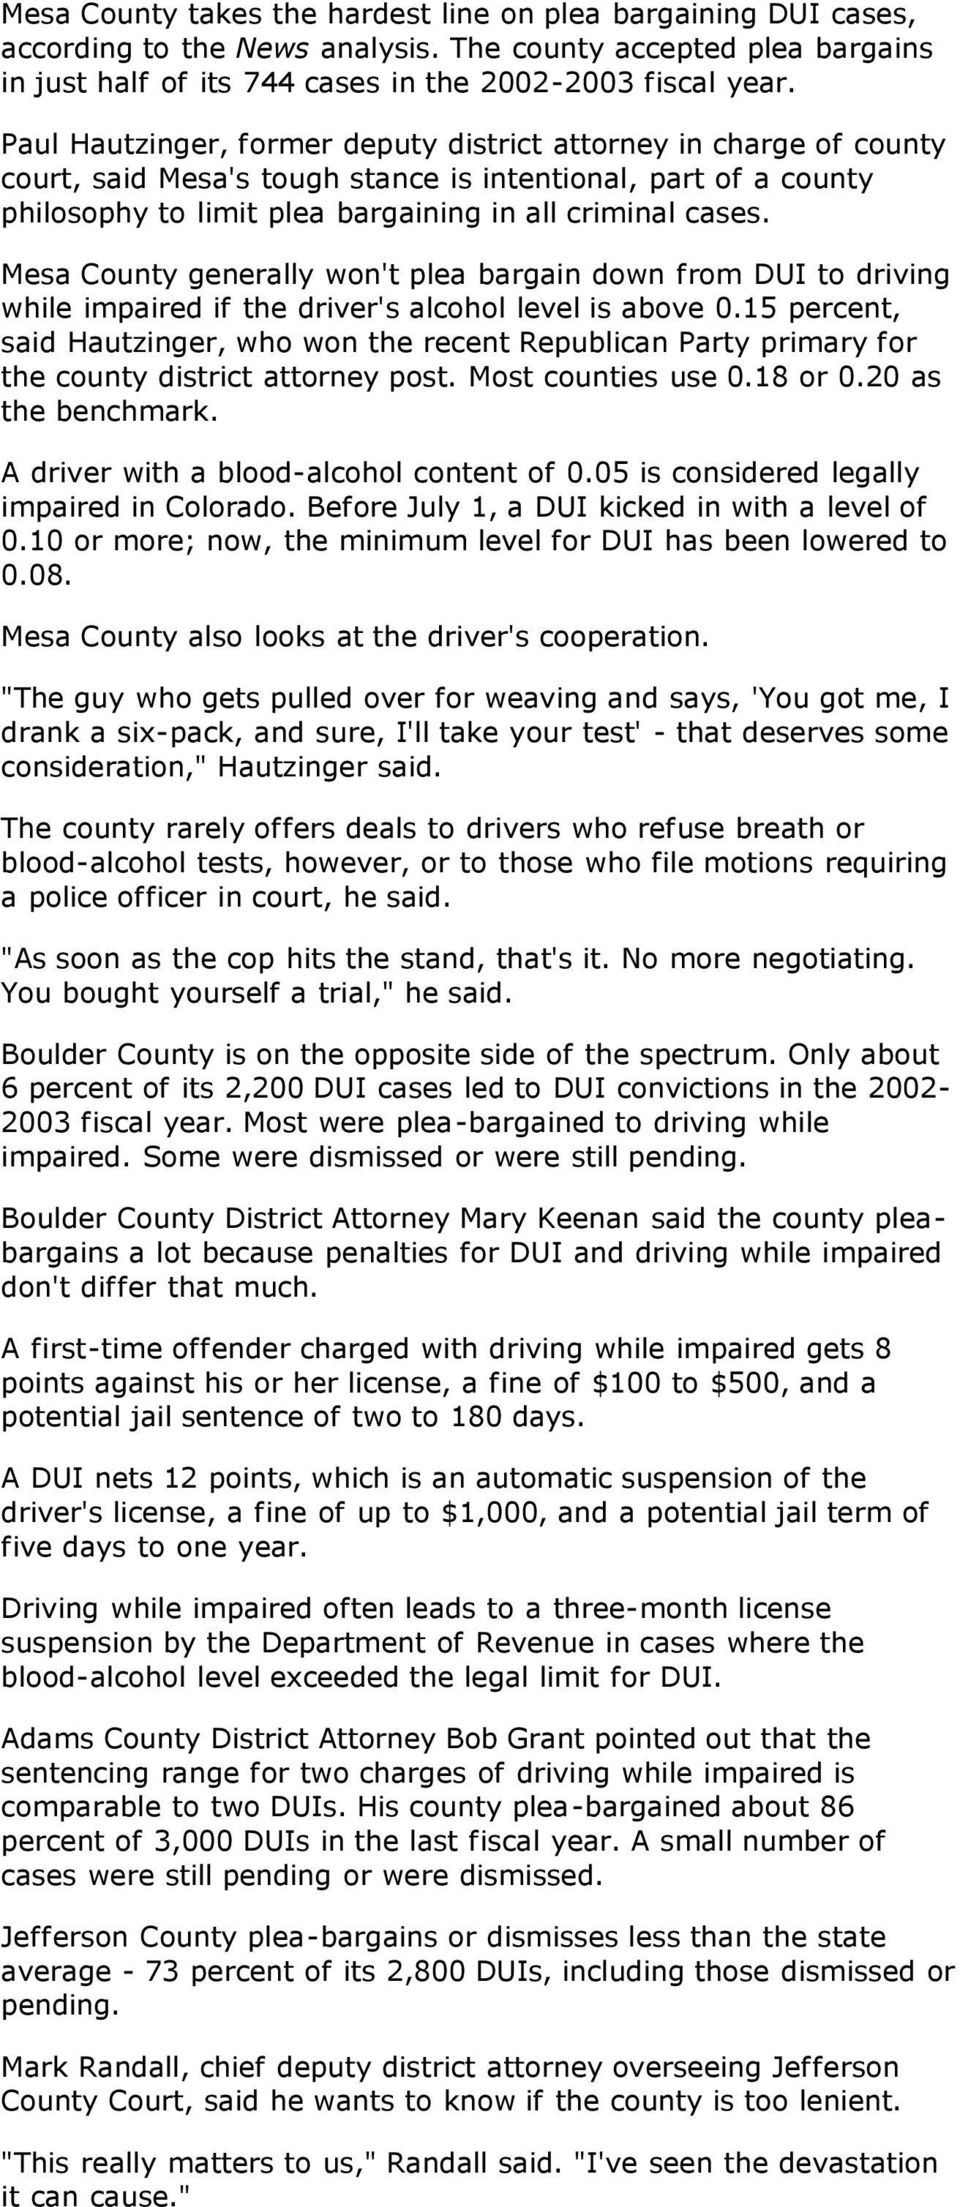 Mesa County generally won't plea bargain down from DUI to driving while impaired if the driver's alcohol level is above 0.